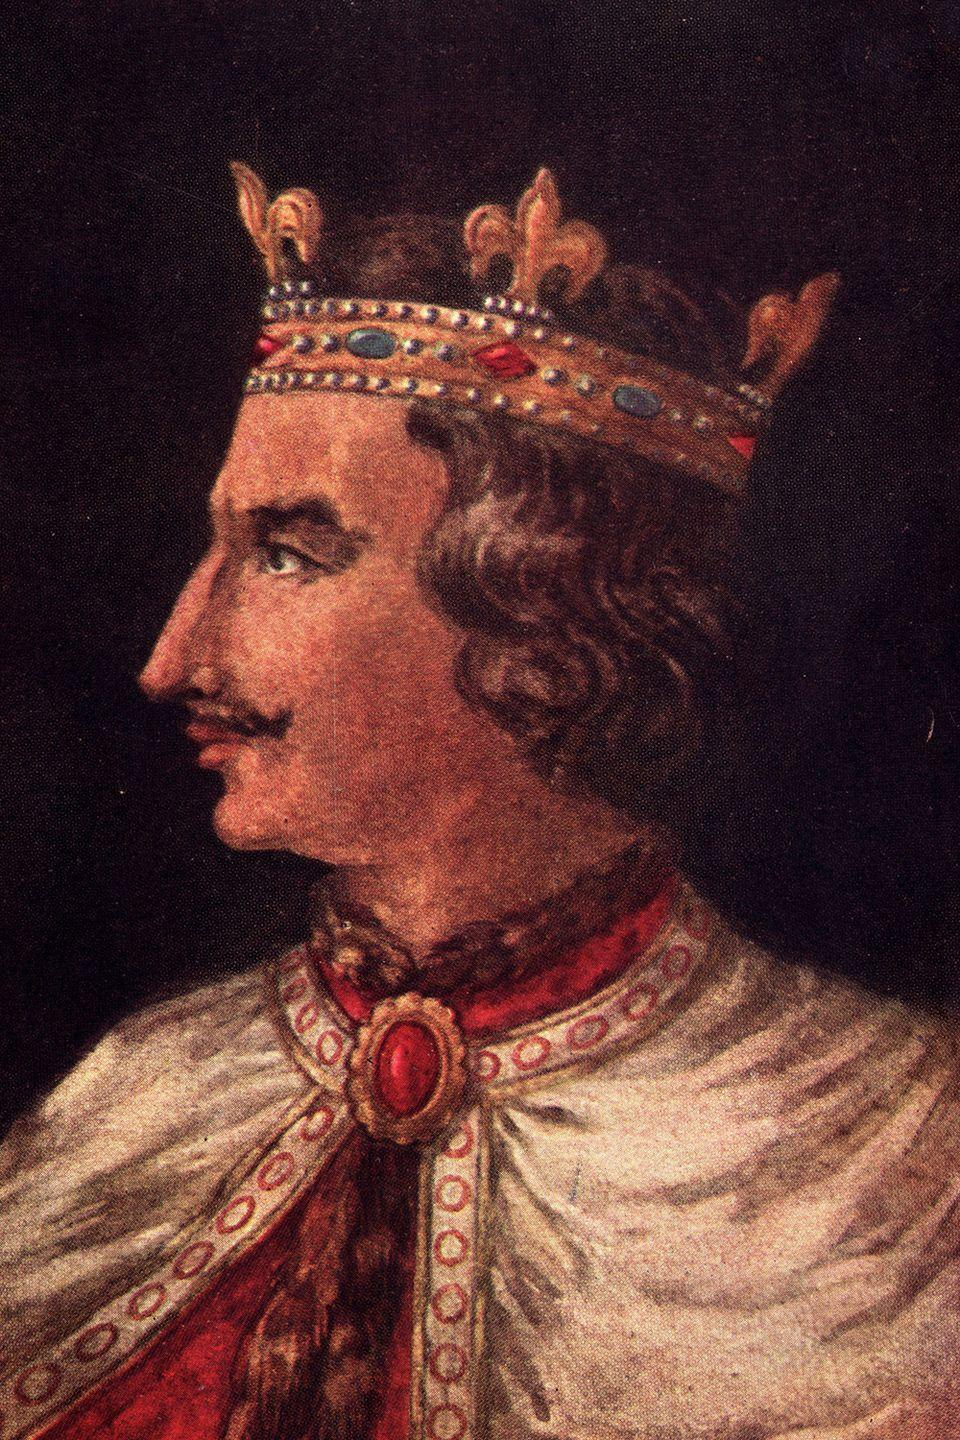 "<p>Robert FitzRoy, the <a href=""https://en.wikipedia.org/wiki/Robert,_1st_Earl_of_Gloucester"" rel=""nofollow noopener"" target=""_blank"" data-ylk=""slk:1st Earl of Gloucester"" class=""link rapid-noclick-resp"">1st Earl of Gloucester</a>, is one of the few confirmed illegitimate children of King Henry I. Henry I had only one legitimate daughter named Matilda but was said to have fathered at least <a href=""https://www.nytimes.com/1993/01/03/nyregion/the-royal-family-tree-sprouts-unofficial-limbs.html"" rel=""nofollow noopener"" target=""_blank"" data-ylk=""slk:22 other children"" class=""link rapid-noclick-resp"">22 other children</a> while not married. The surname <a href=""https://en.wikipedia.org/wiki/Fitzroy"" rel=""nofollow noopener"" target=""_blank"" data-ylk=""slk:FitzRoy"" class=""link rapid-noclick-resp"">FitzRoy</a> was often used by the illegitimate sons and daughters of a king or queen.</p>"